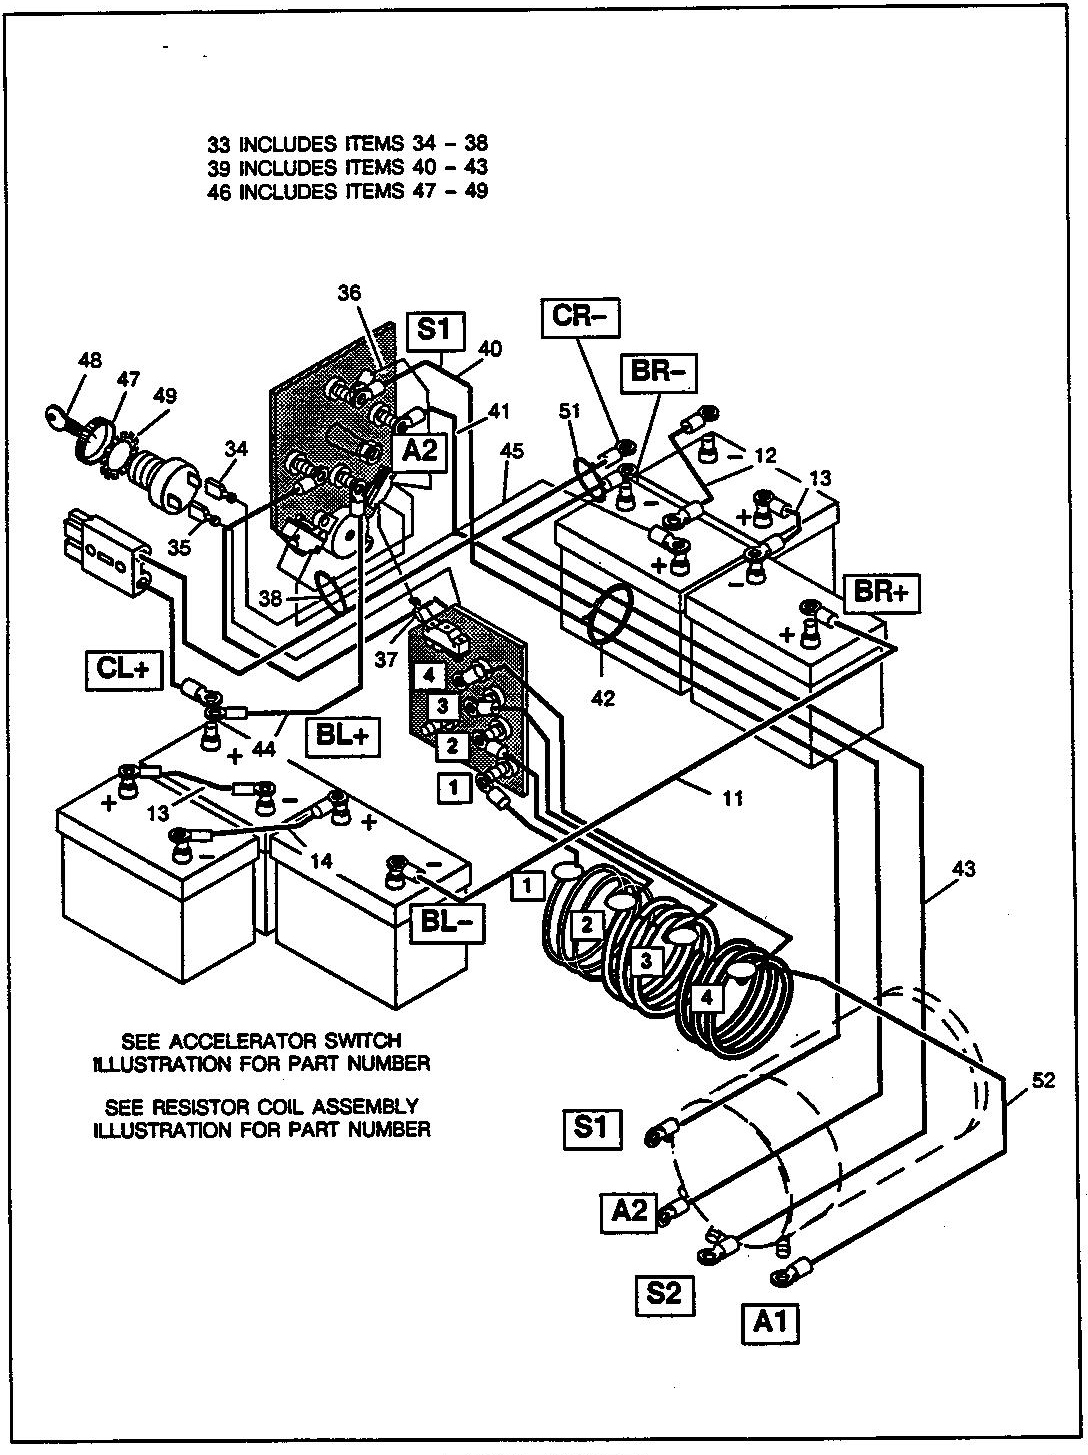 32_1989-1991 Electric Power Wiring